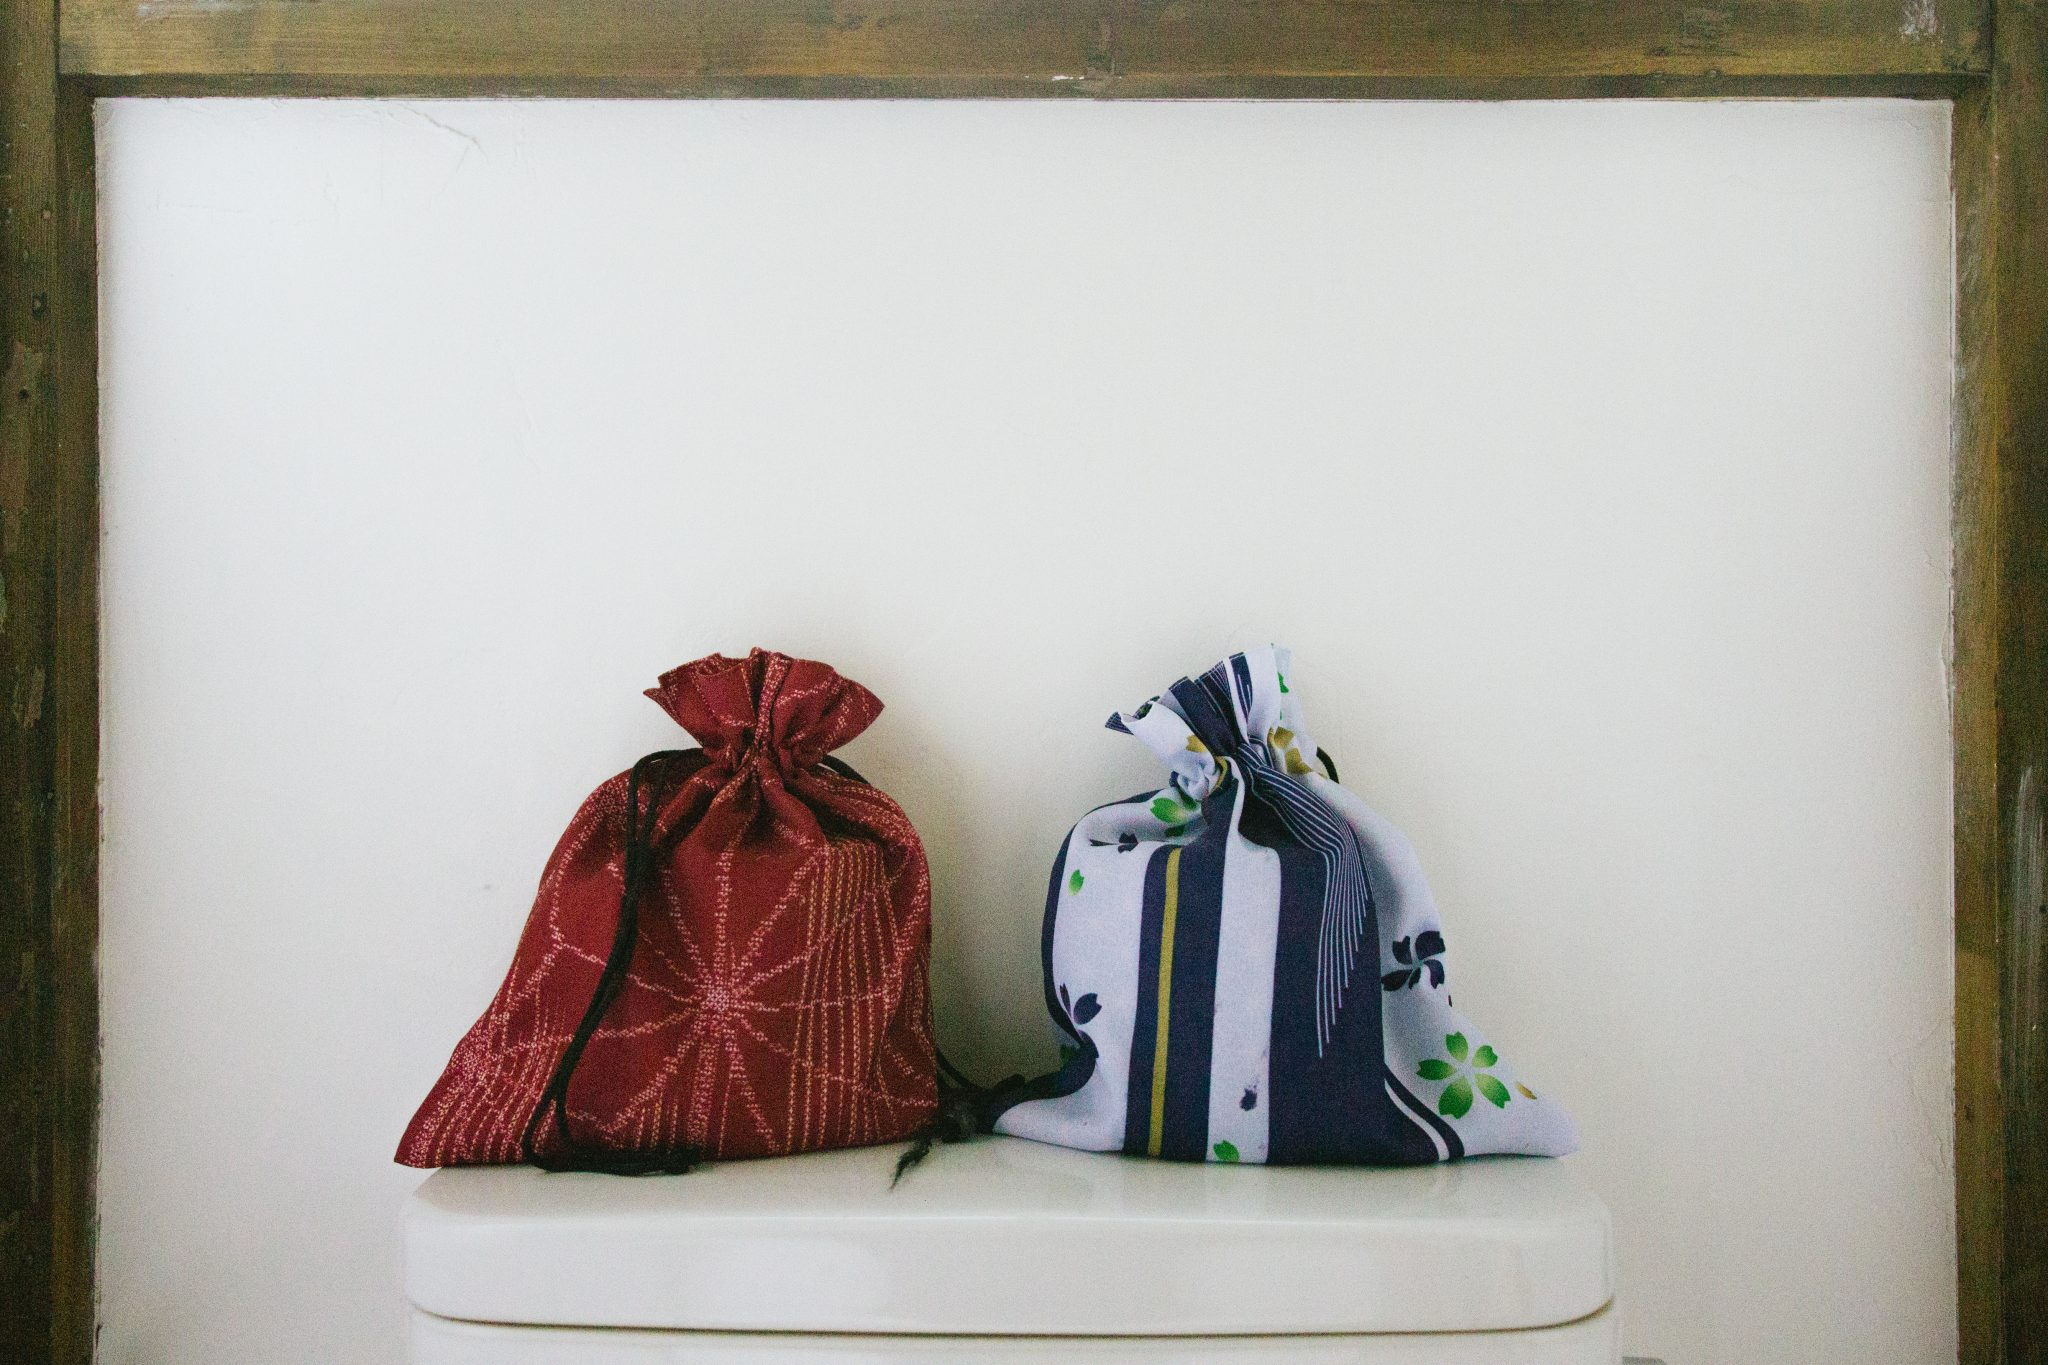 Toilet roll in their decorative sacks at coya cottage